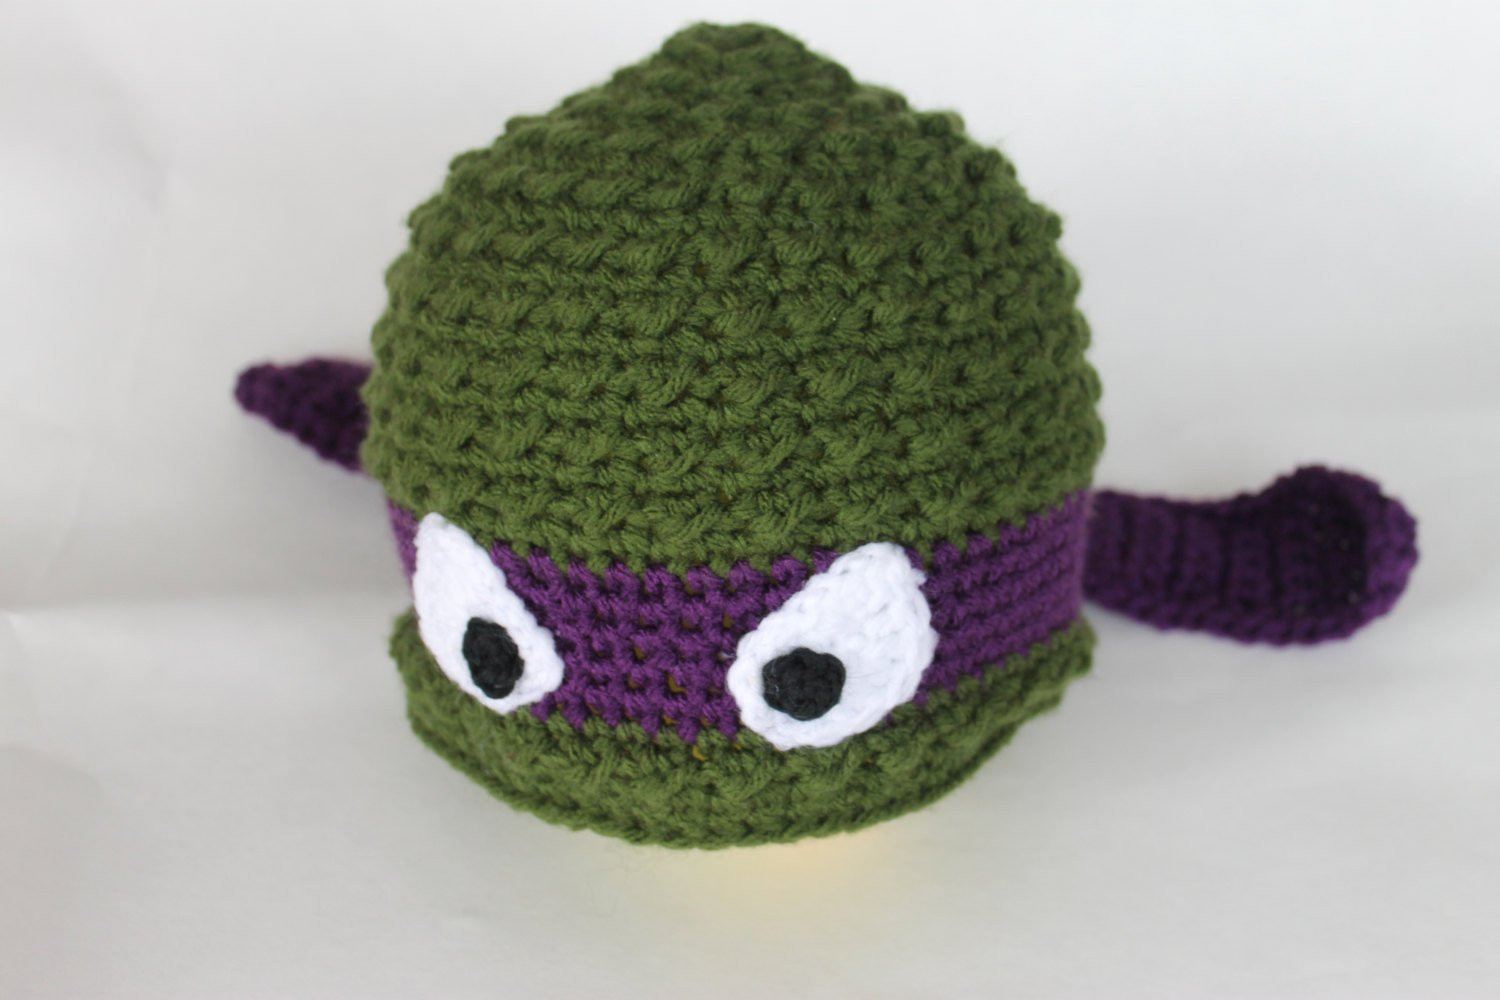 Crochet Ninja Turtle Hat Beautiful Crochet Ninja Turtle Beanie Hat Warm Ninja Turtle Costume Of Innovative 46 Pictures Crochet Ninja Turtle Hat